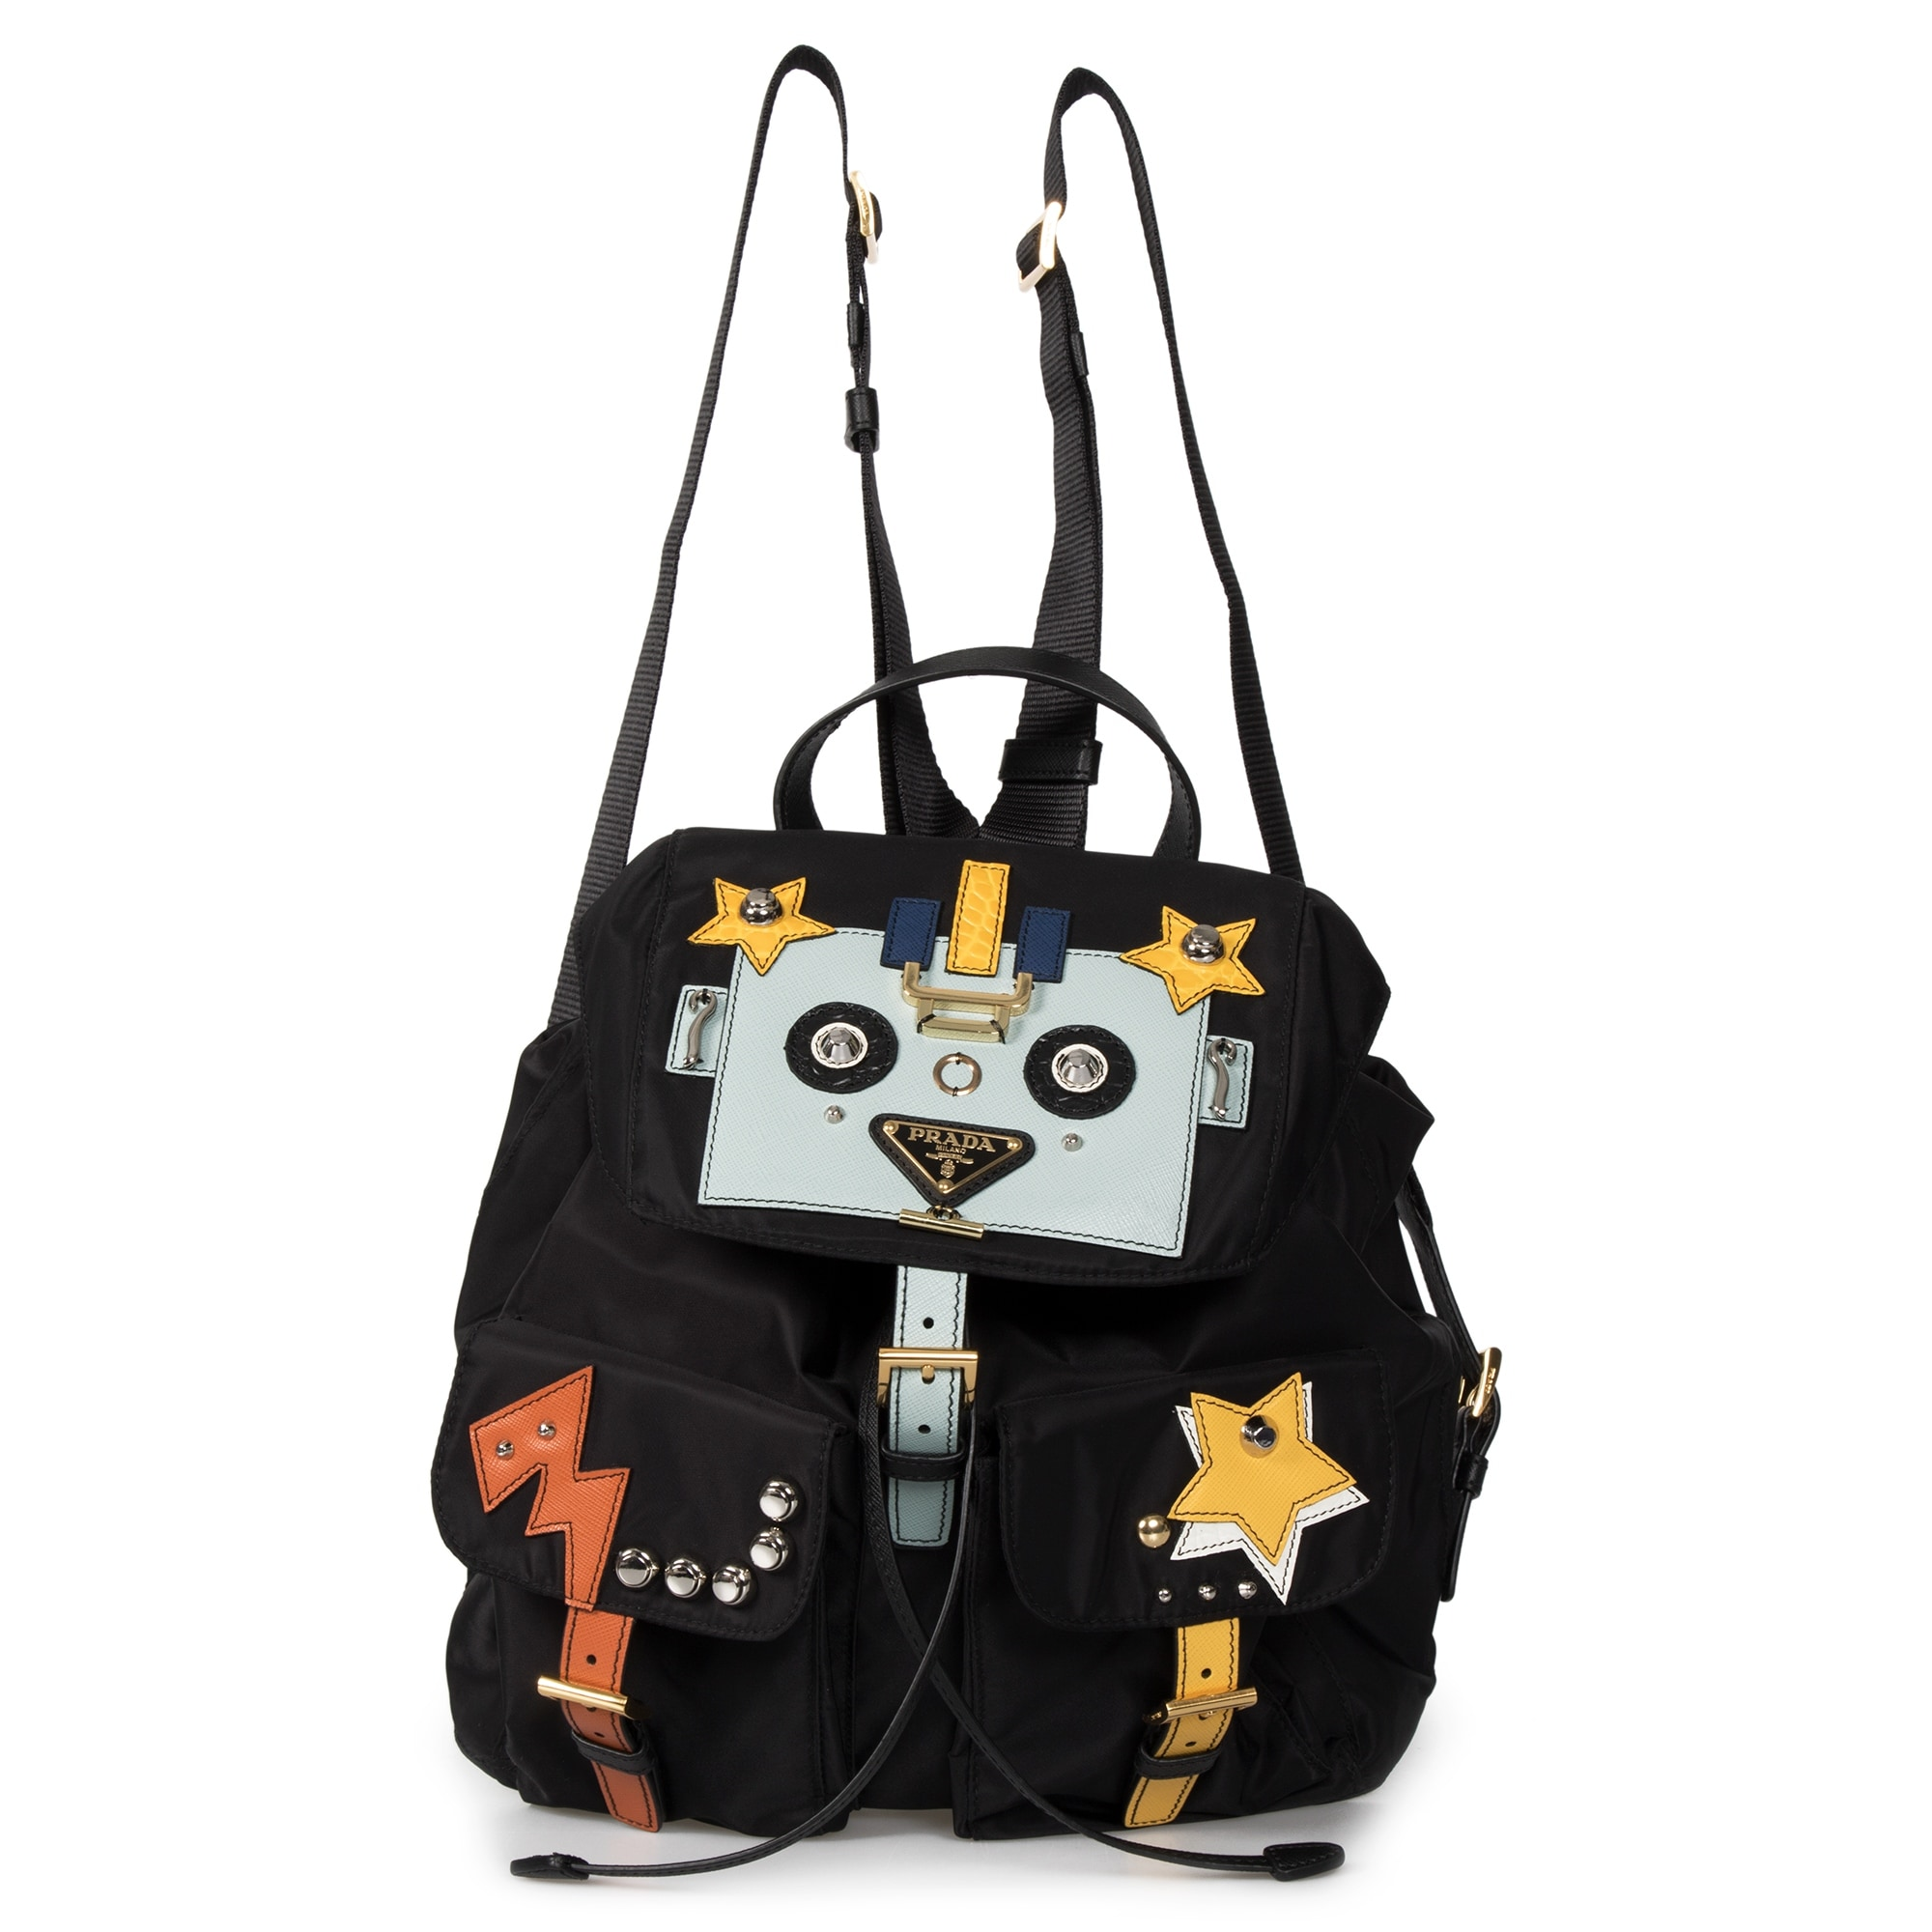 7bd805b559b4 Shop Prada Black Fabric Backpack With Robot Motif - Free Shipping Today -  Overstock - 23085386